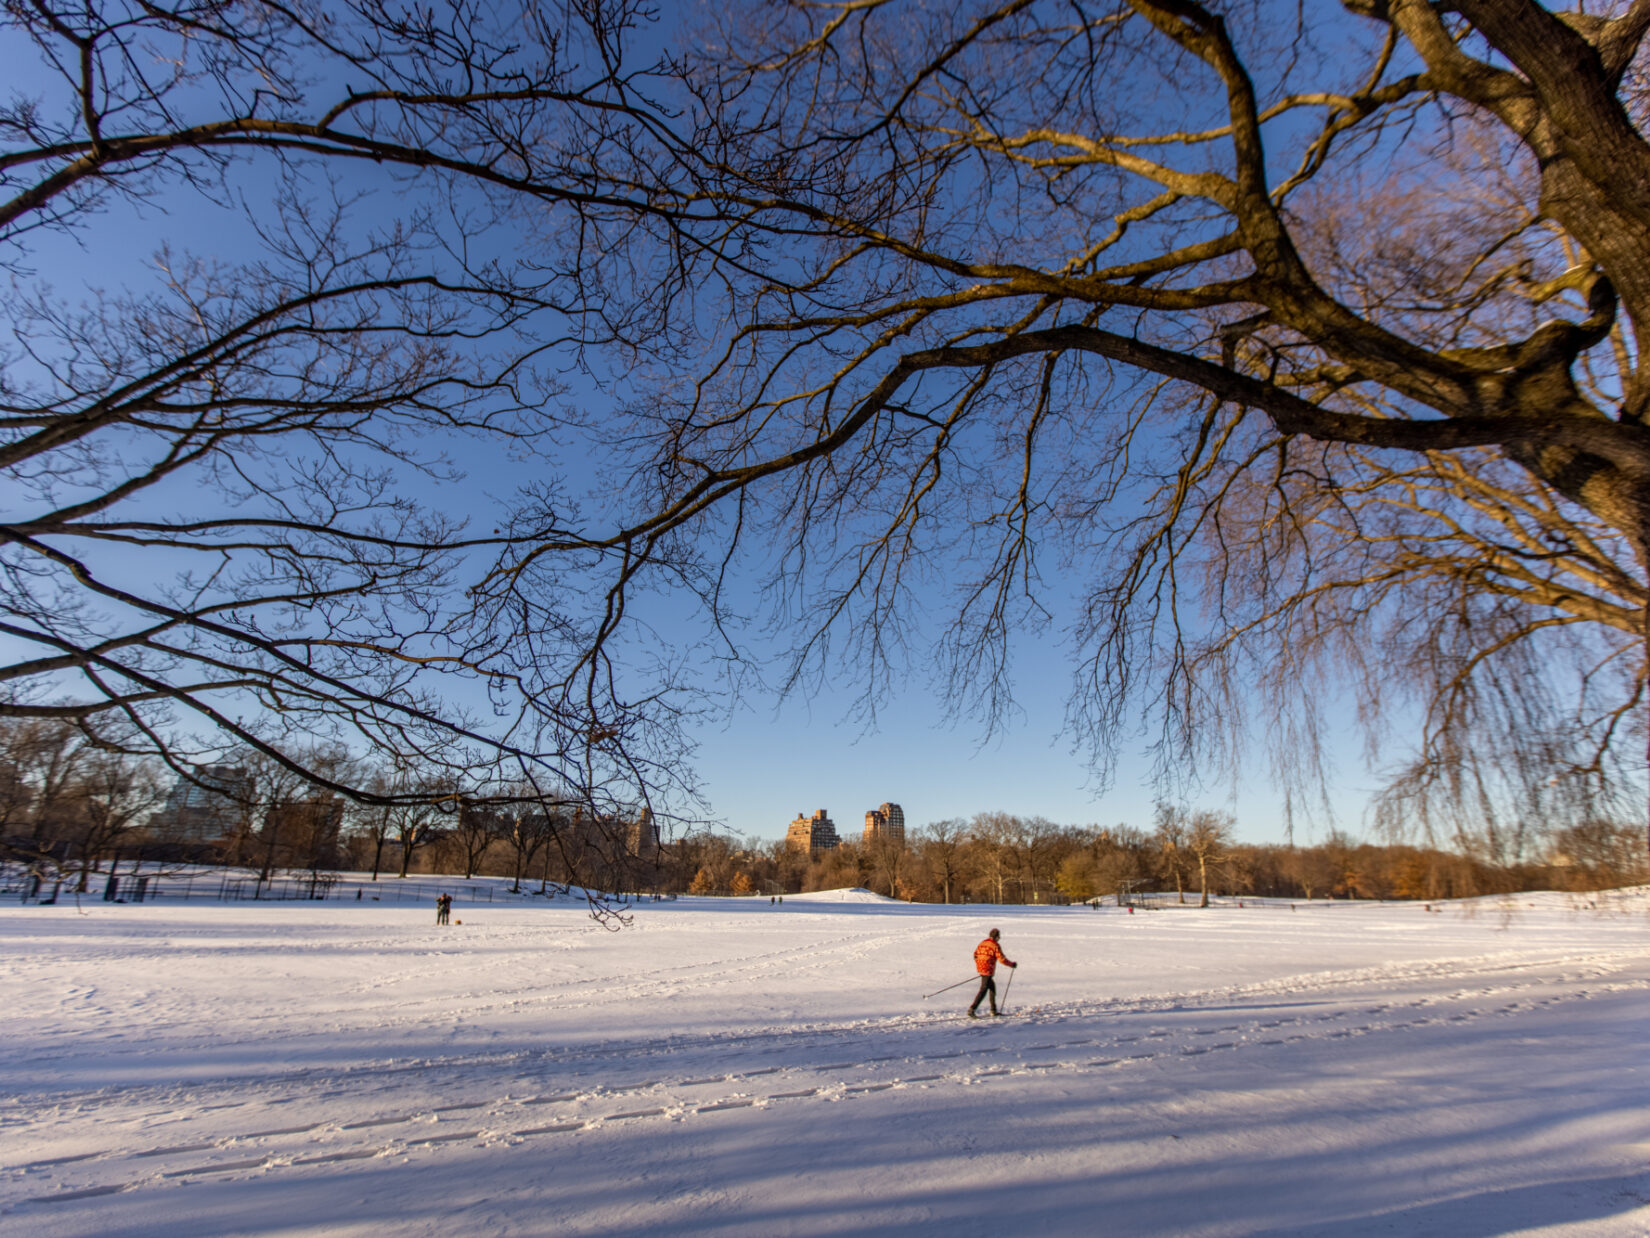 A cross-country skier makes their way across a snowy North Meadow